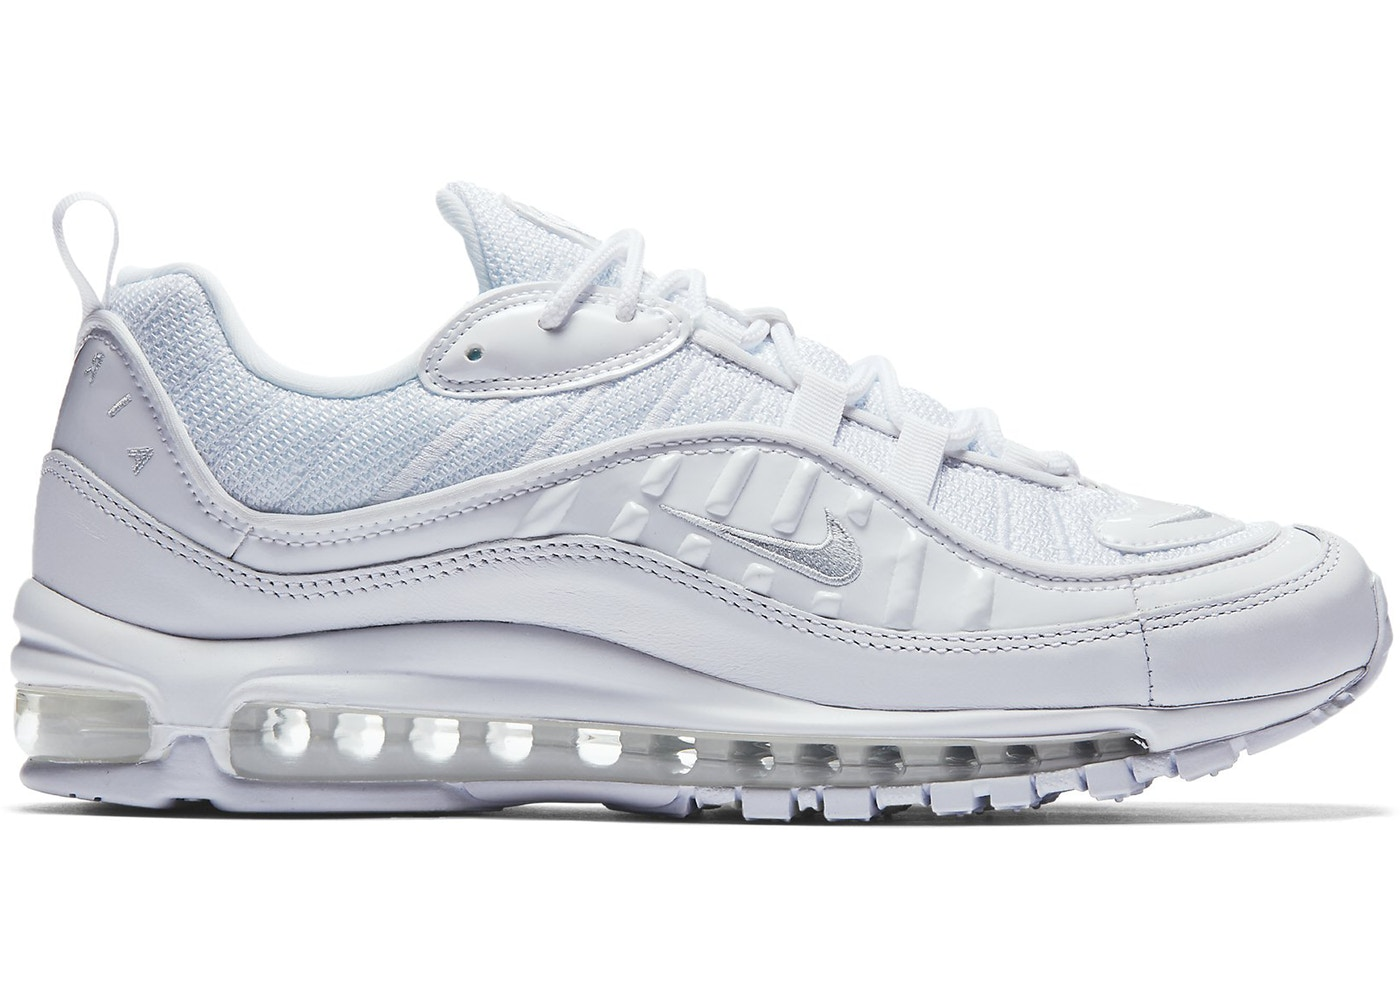 detailed look 76596 e6f26 Air Max 98 White